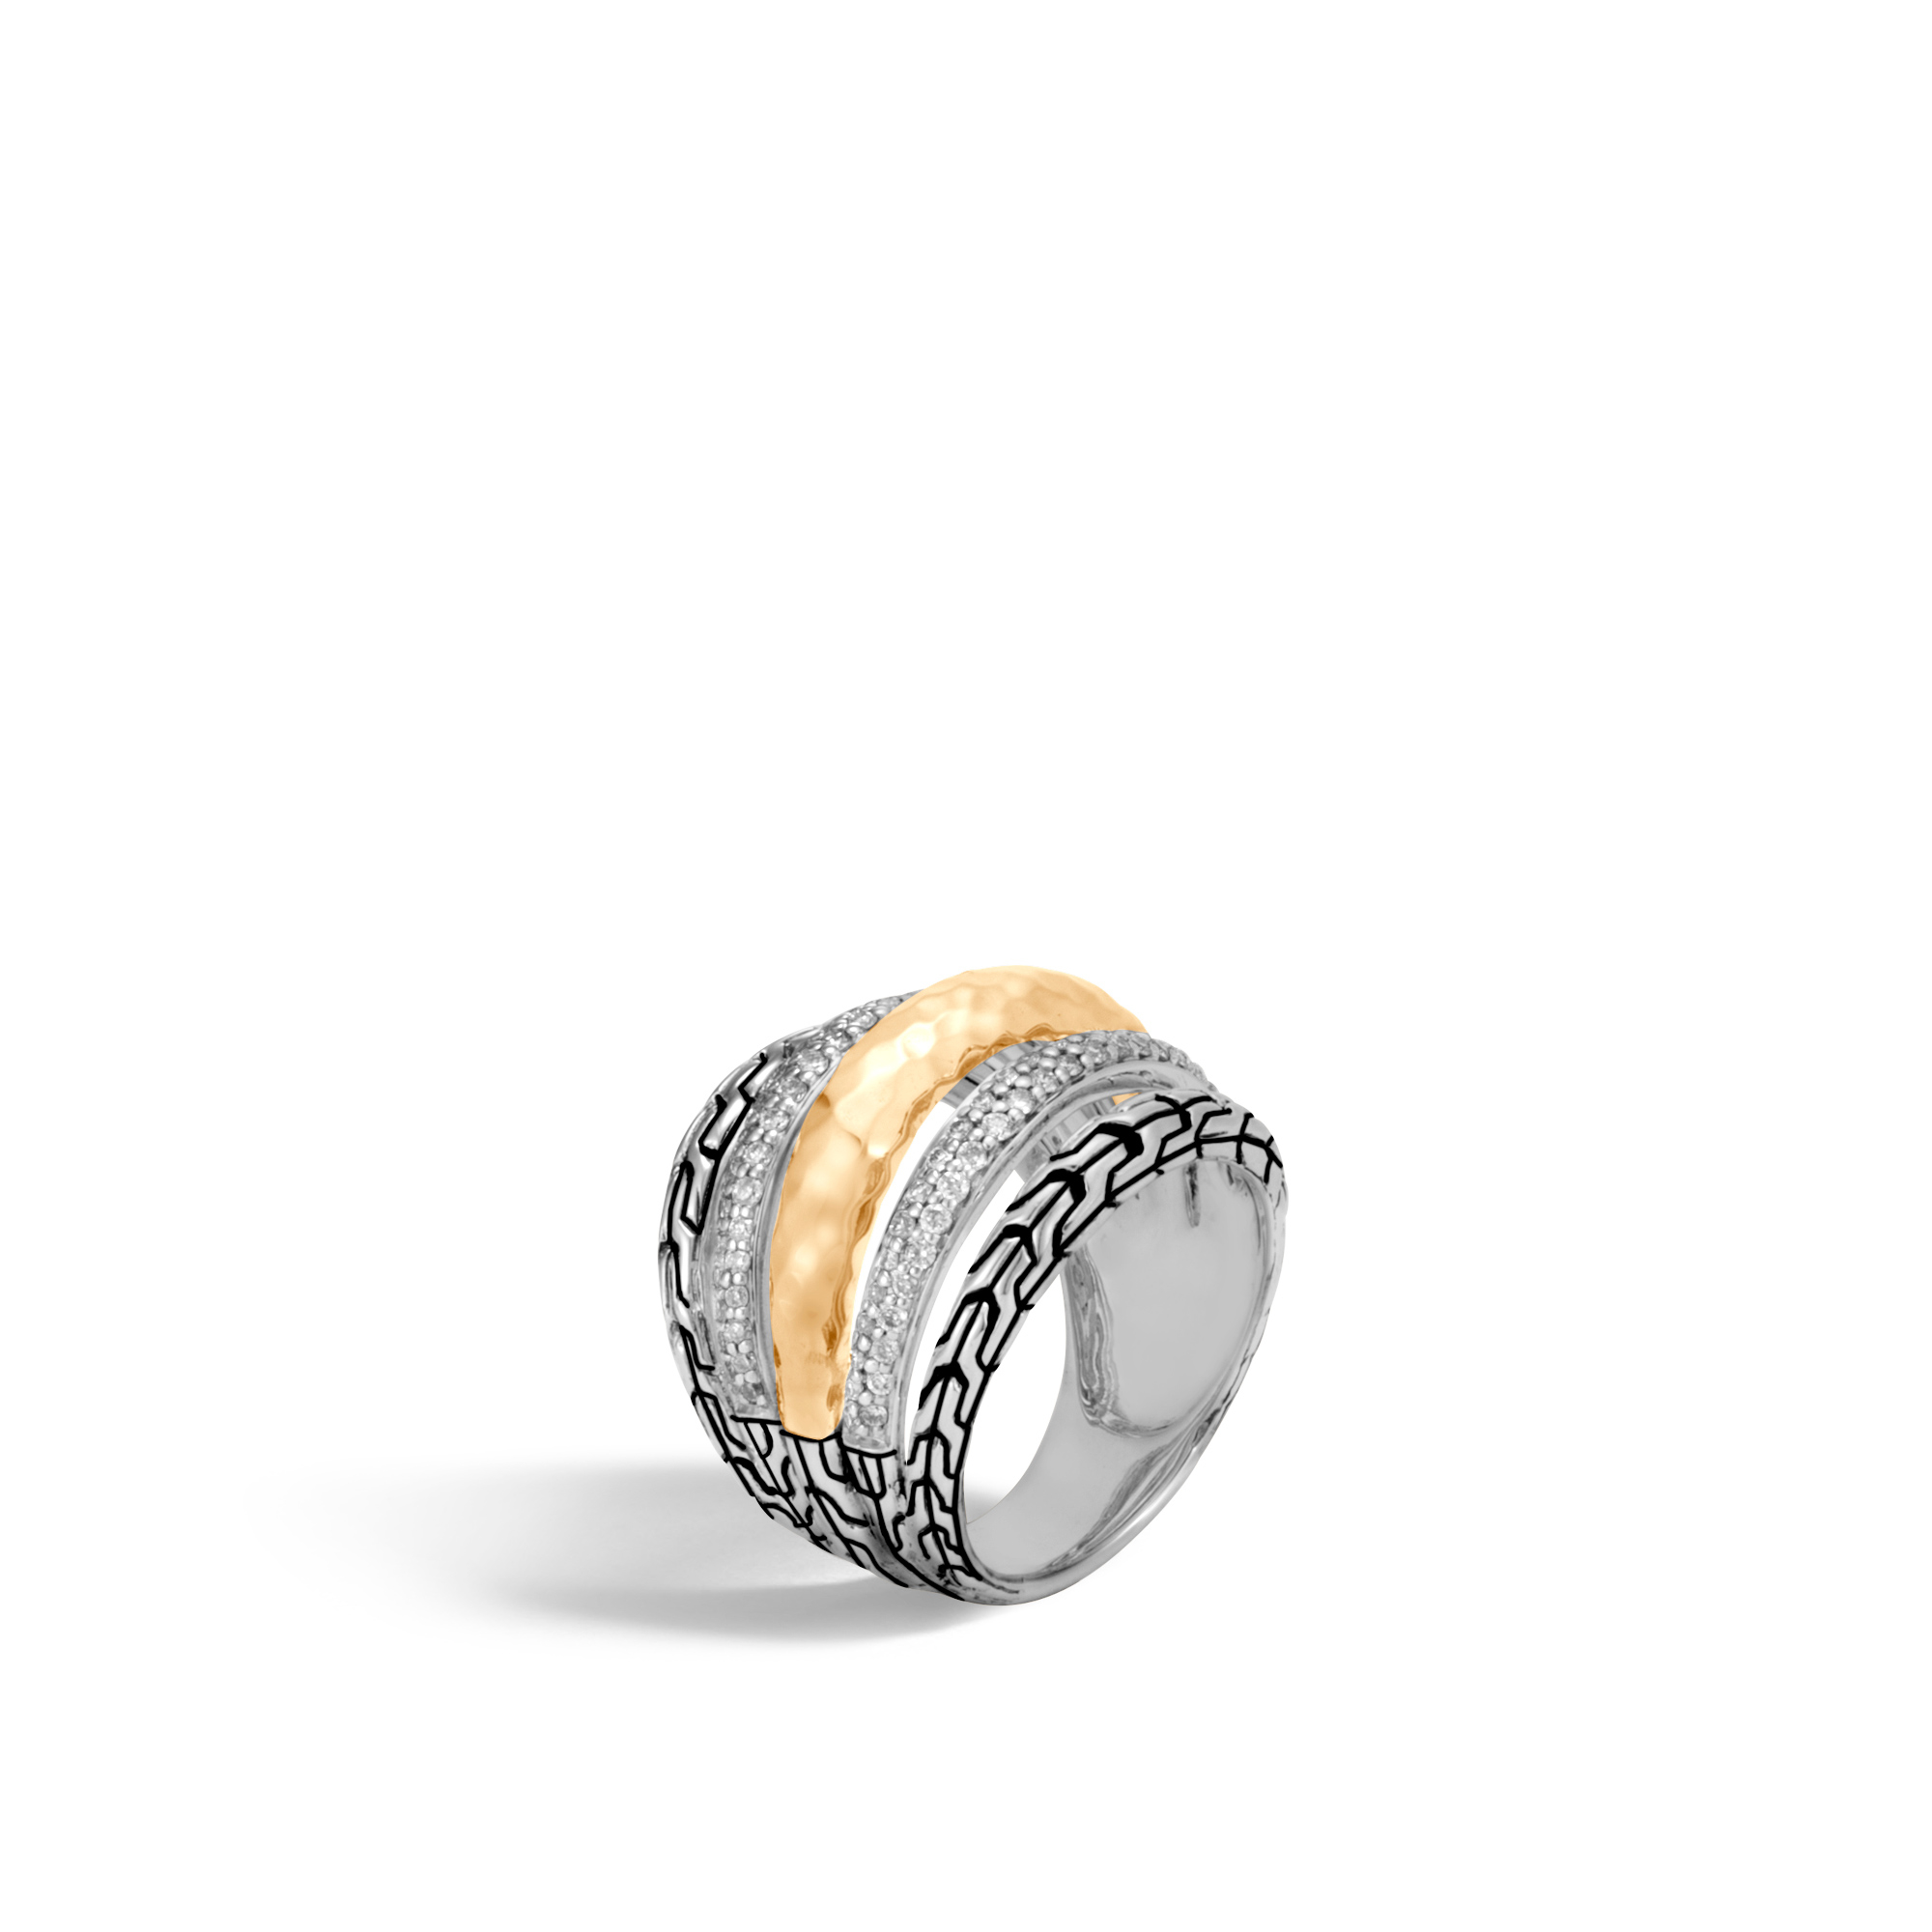 John Hardy 18K  Sterling Silver and Gold   Diamonds Silver Rings with Stones RZP9996992DIX7